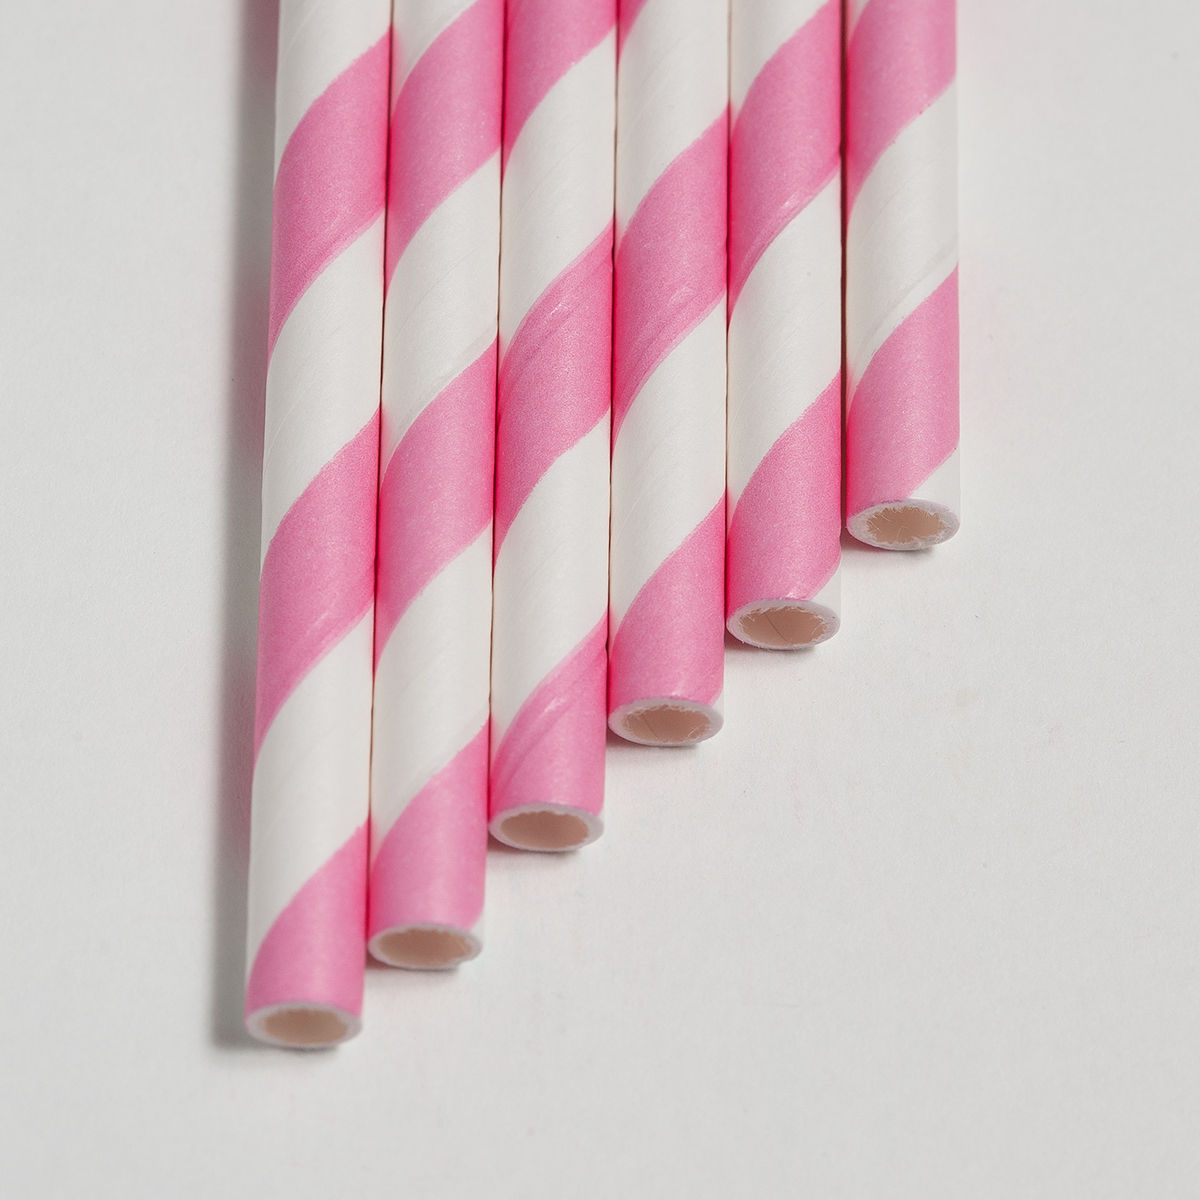 Bubble-Gum-Pink-Lined0002.jpg